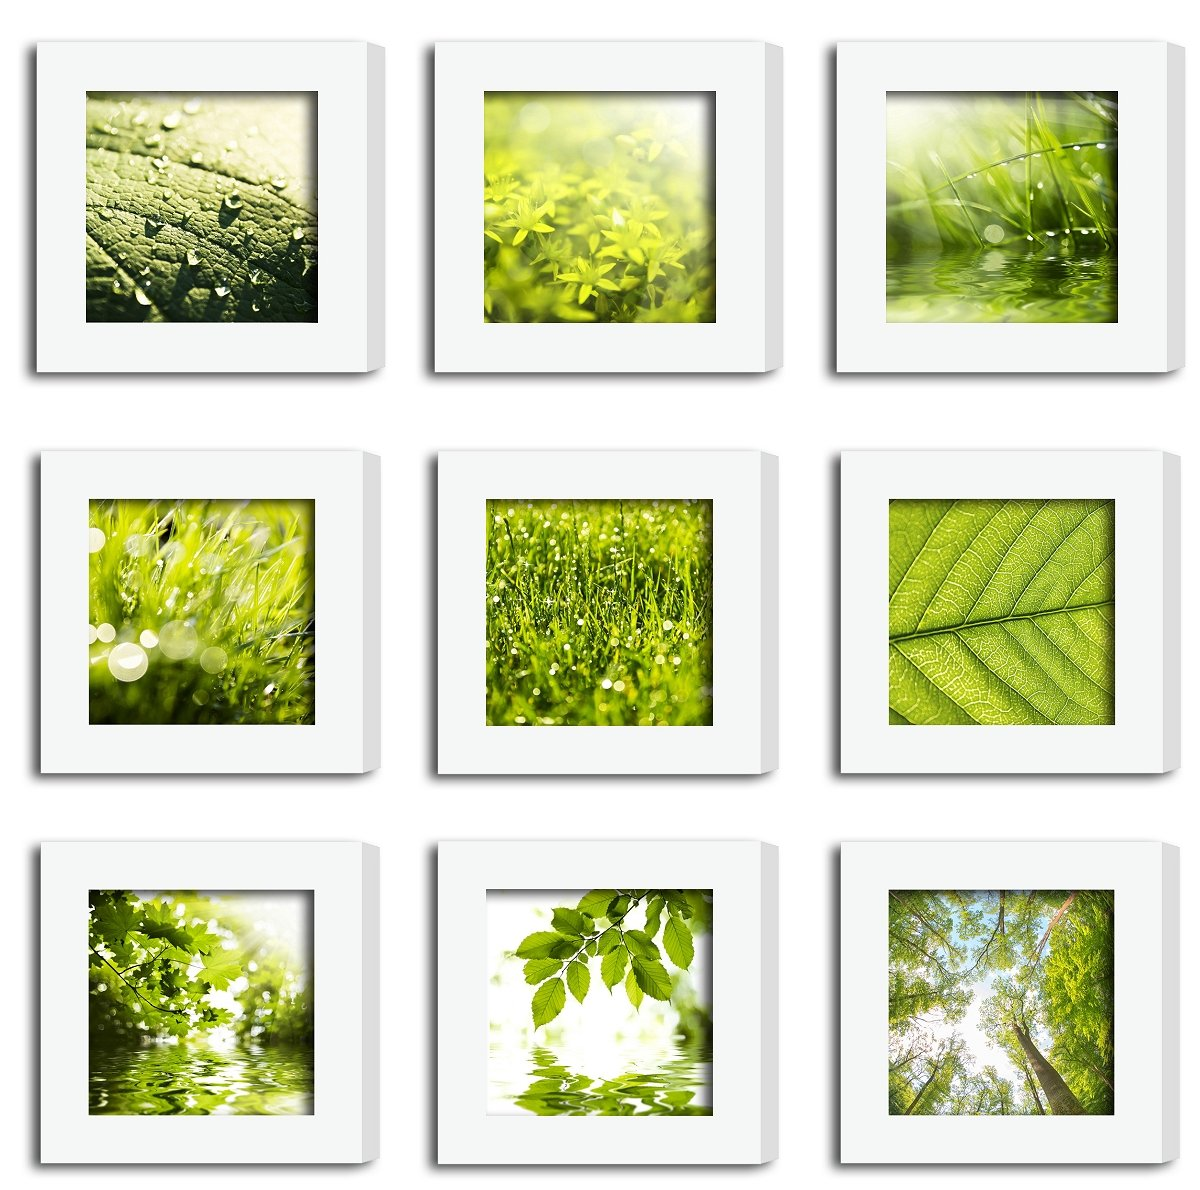 XUFLY 9Pcs 4x4 Real Glass Wood Frame White Square, Fit Family Image Pictures Photo (Window 3.6x3.6 inch), Desktop Stand On Wall Family Combine Leaves Flower Green Decoration (10 Set Pictures) (19) by XUFLY